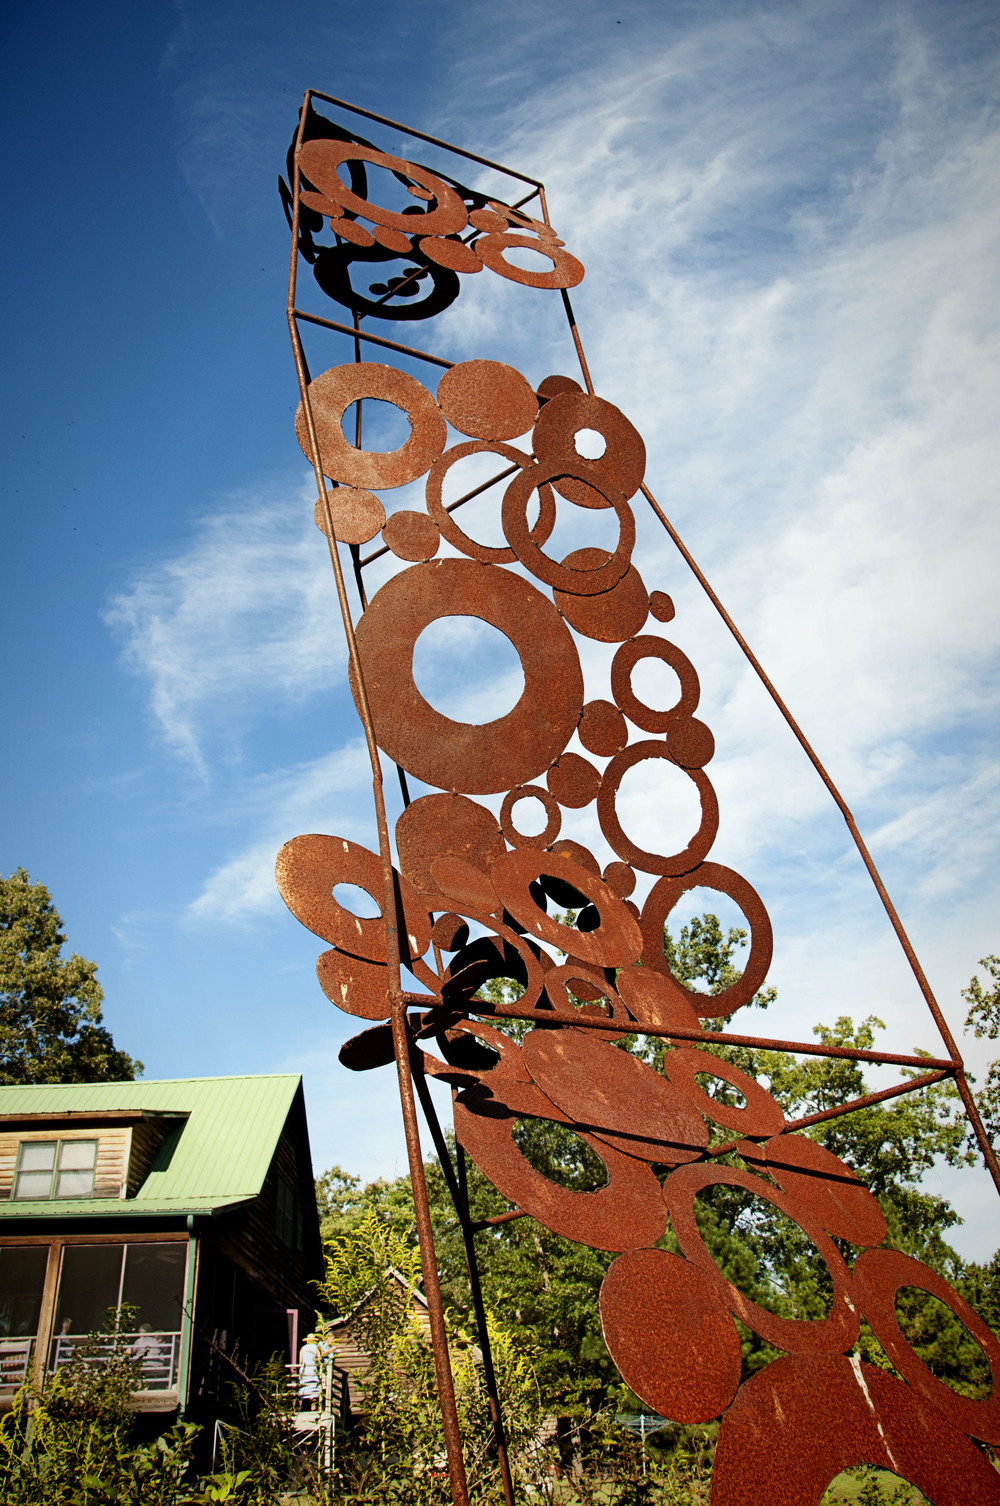 Come out and Play - Chapel Hill - Pittsboro - NC - sculpture show